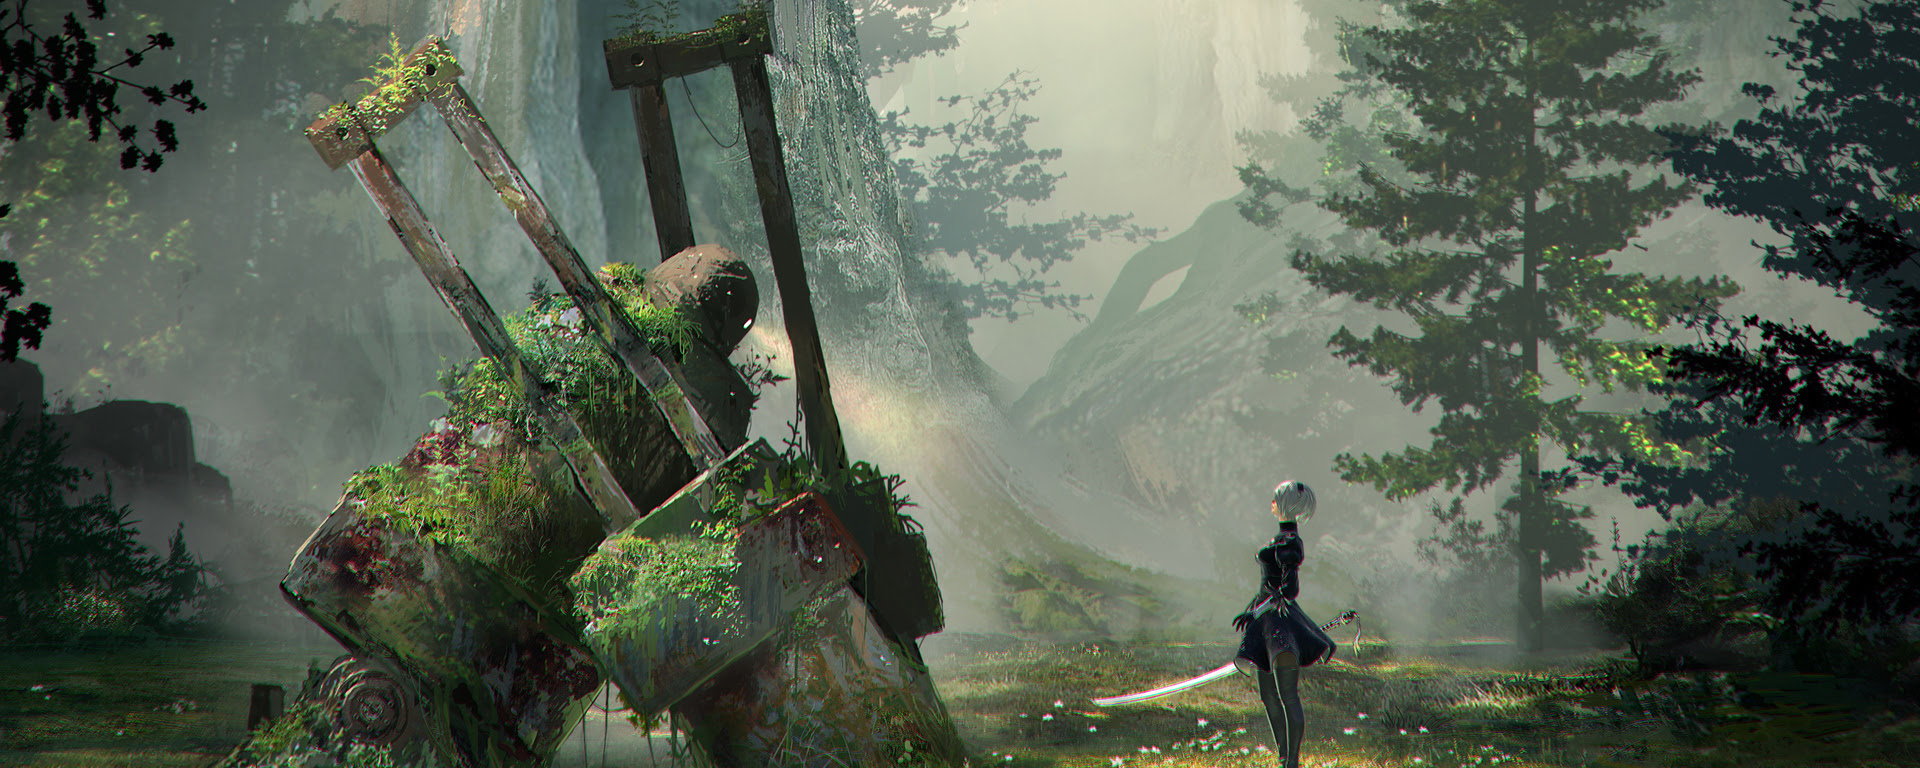 Square Enix is hiring for a NieR project screenshot